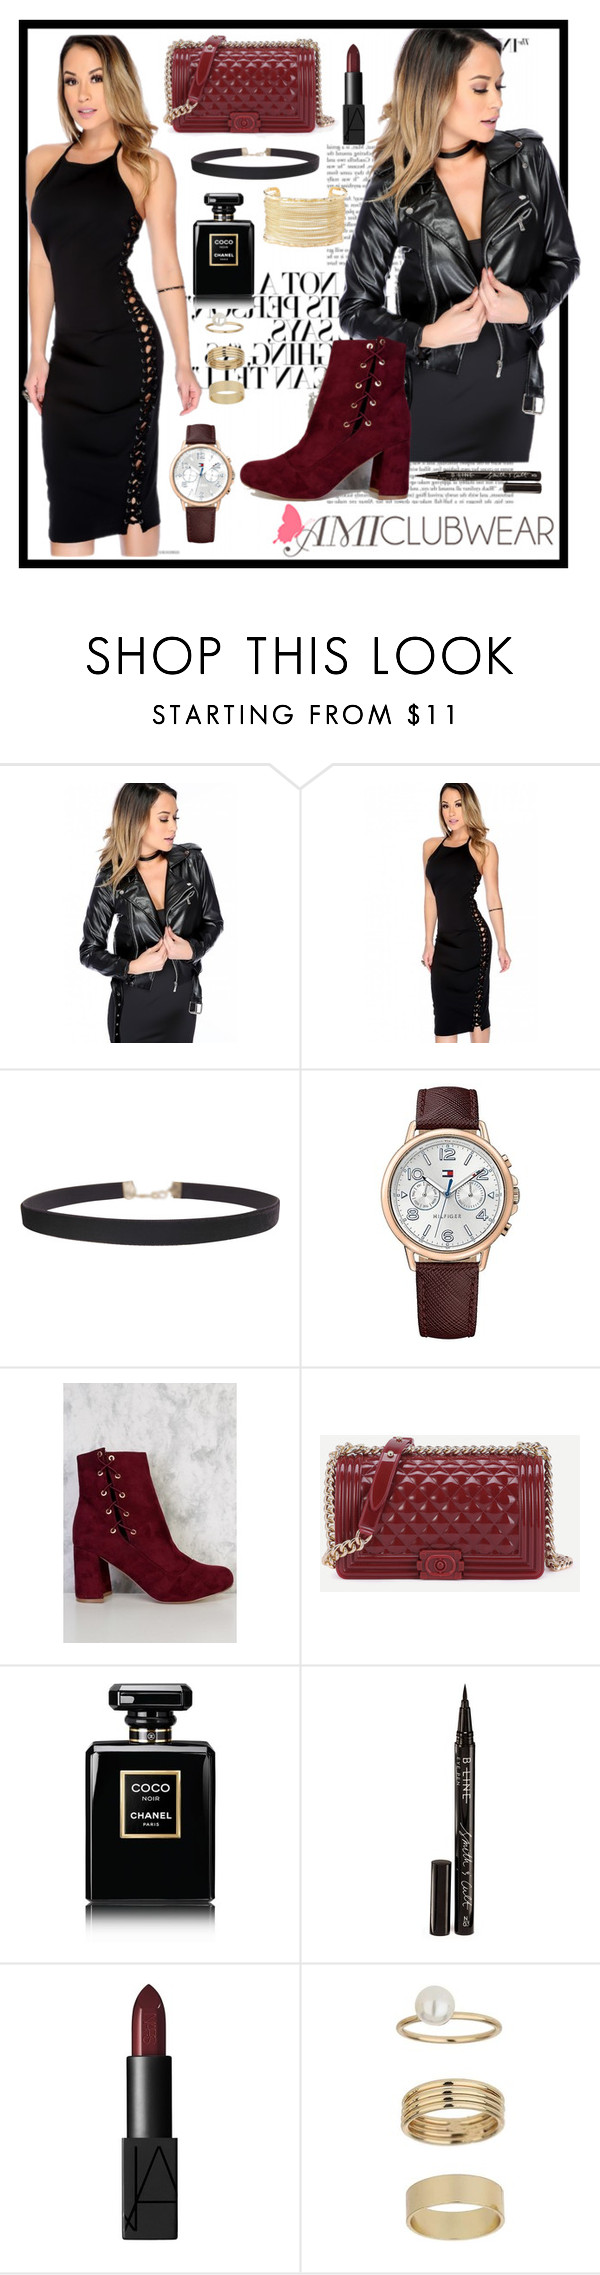 """""""Amiclubwear 22"""" by b-necka ❤ liked on Polyvore featuring Humble Chic, Tommy Hilfiger, Chanel, Smith & Cult, NARS Cosmetics, Miss Selfridge and Charlotte Russe"""